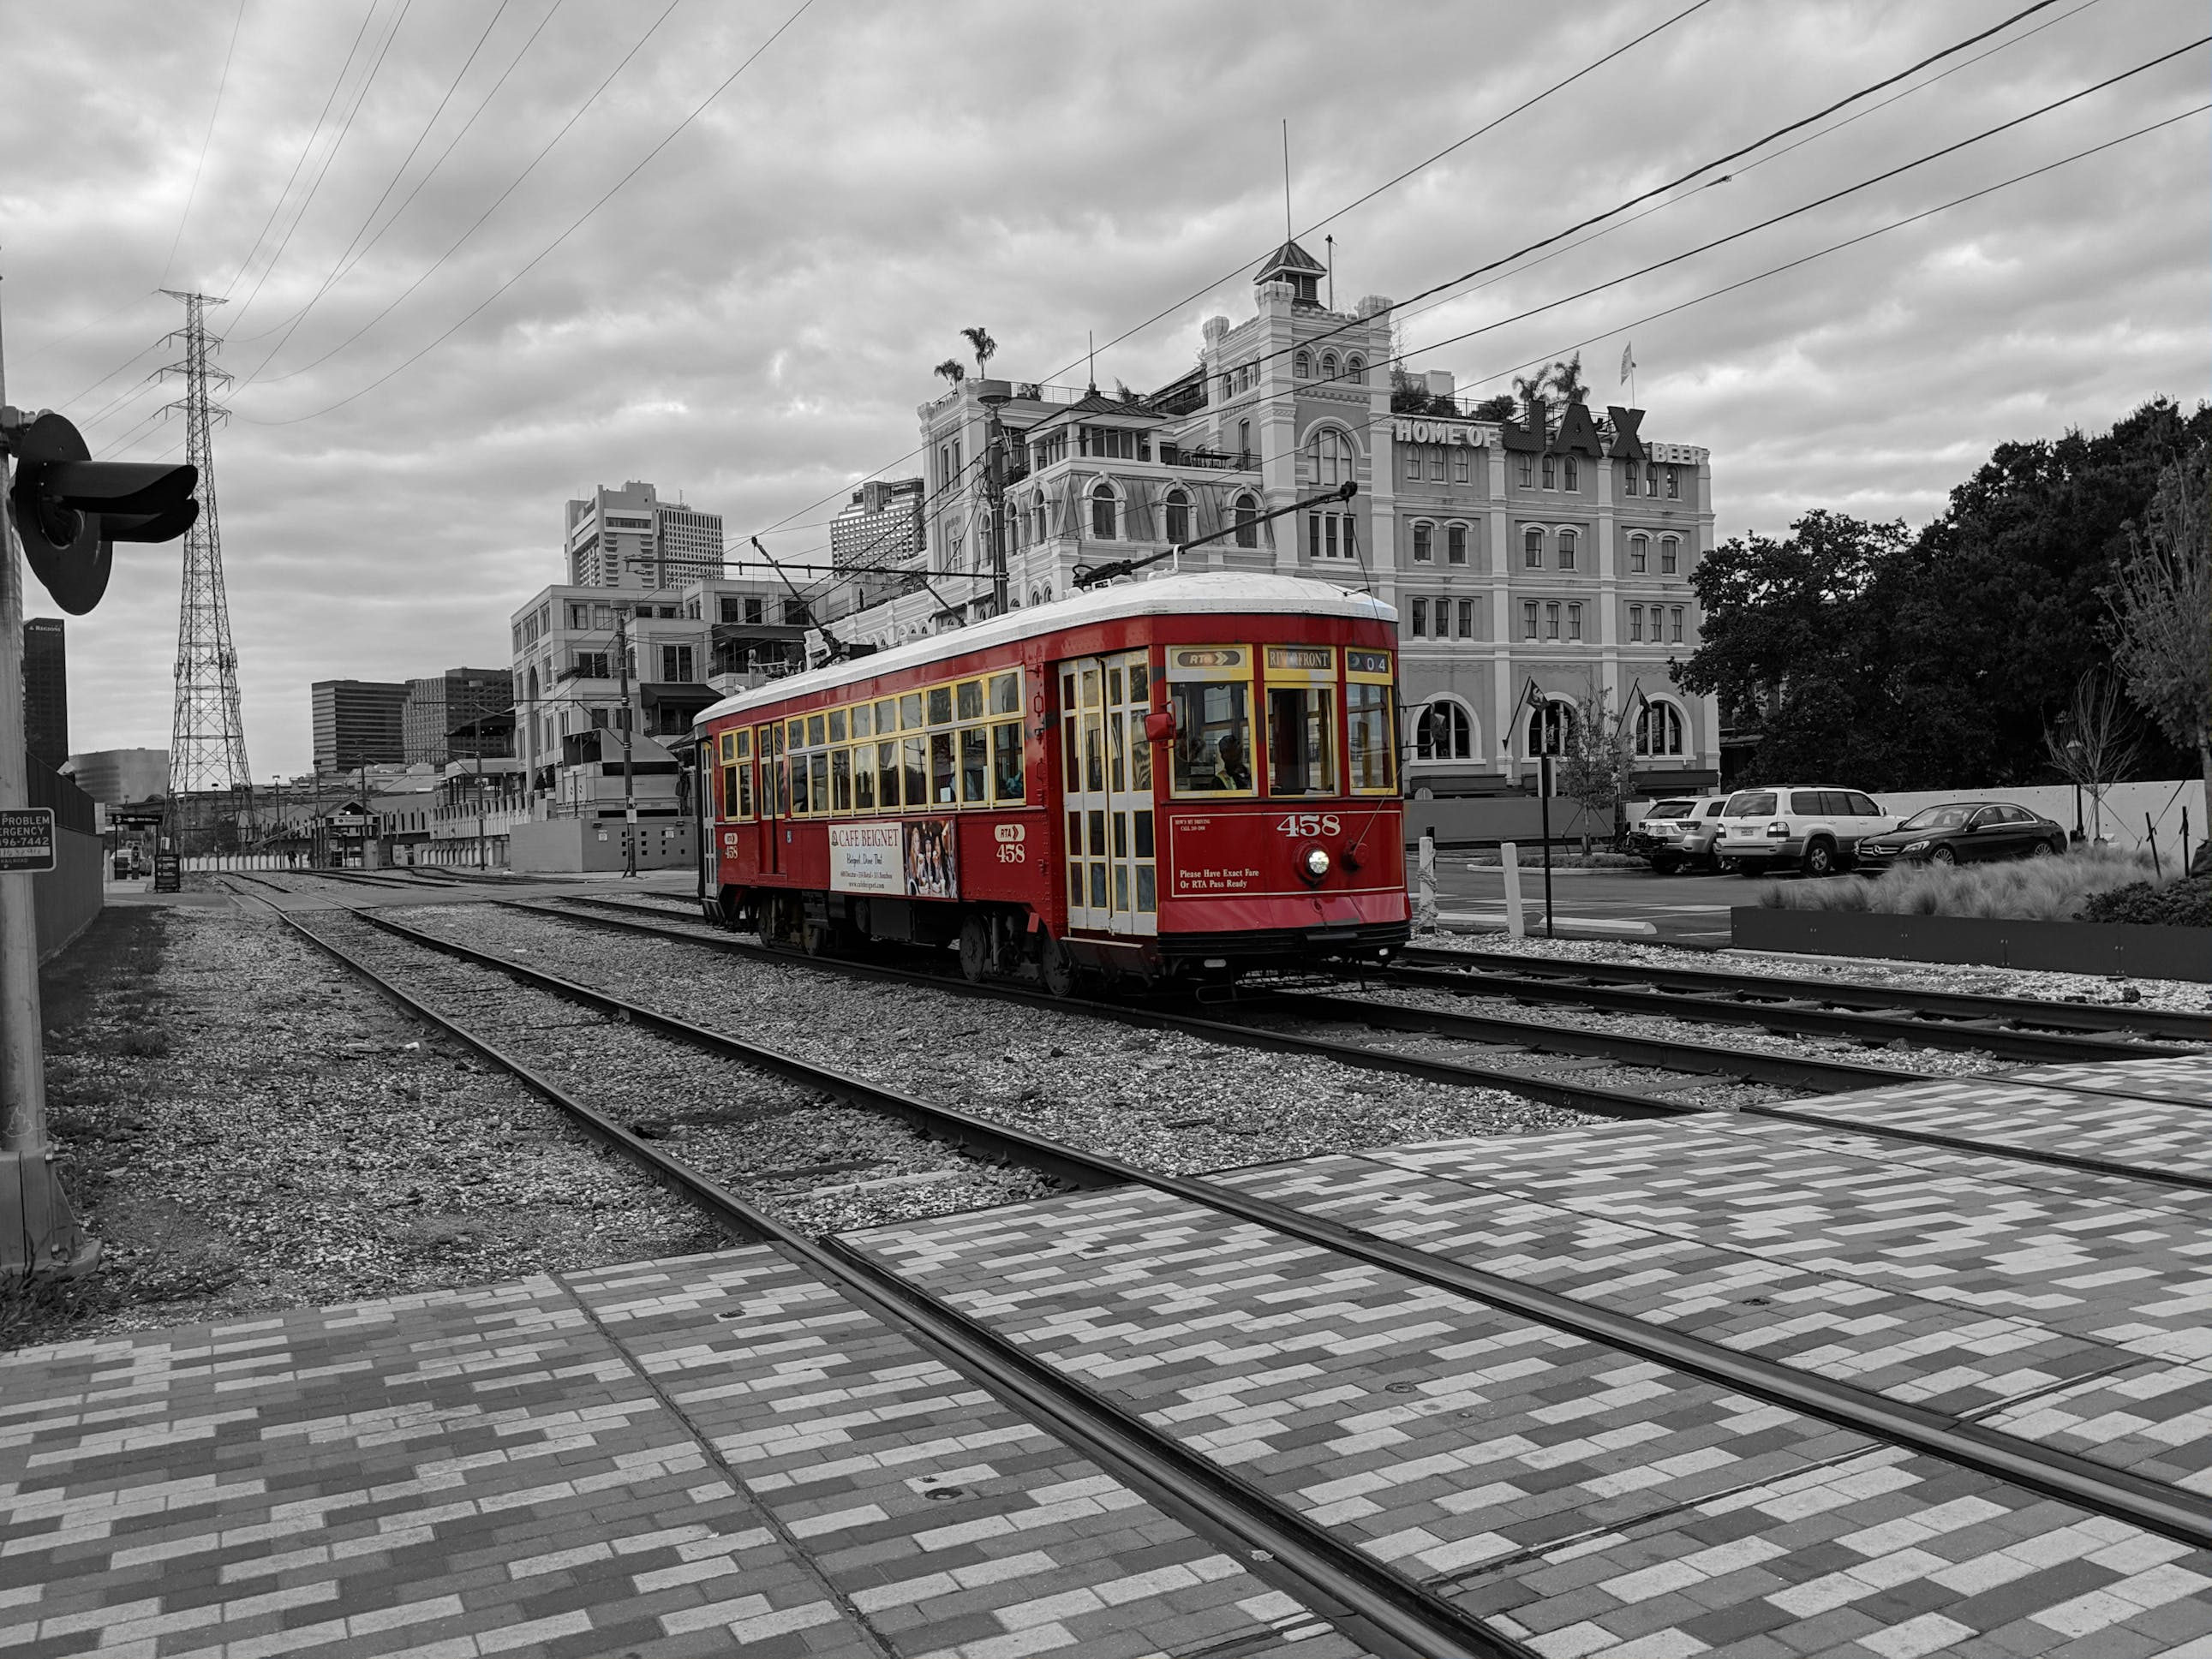 Free stock photo of New Orleans trolley